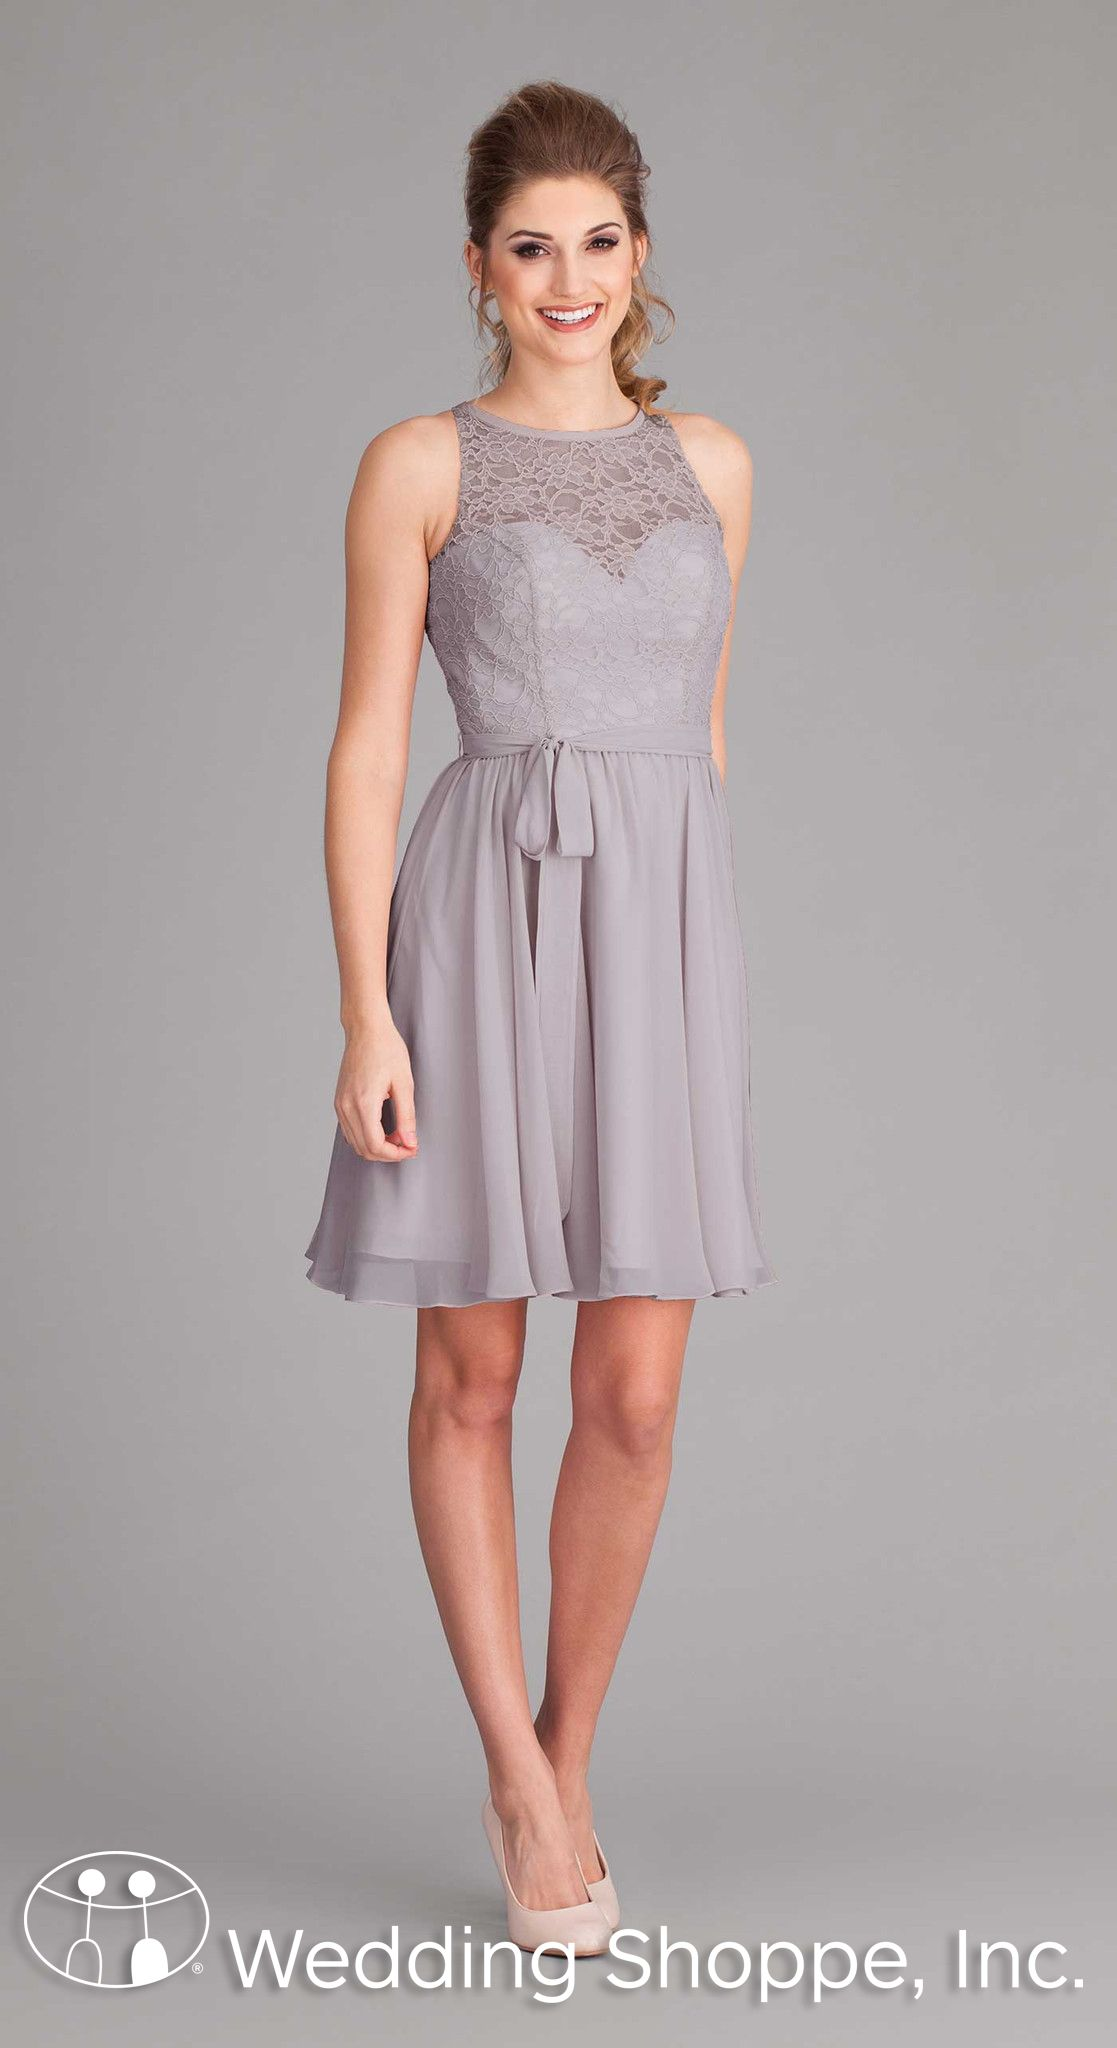 Light grey lace bridesmaid dresses